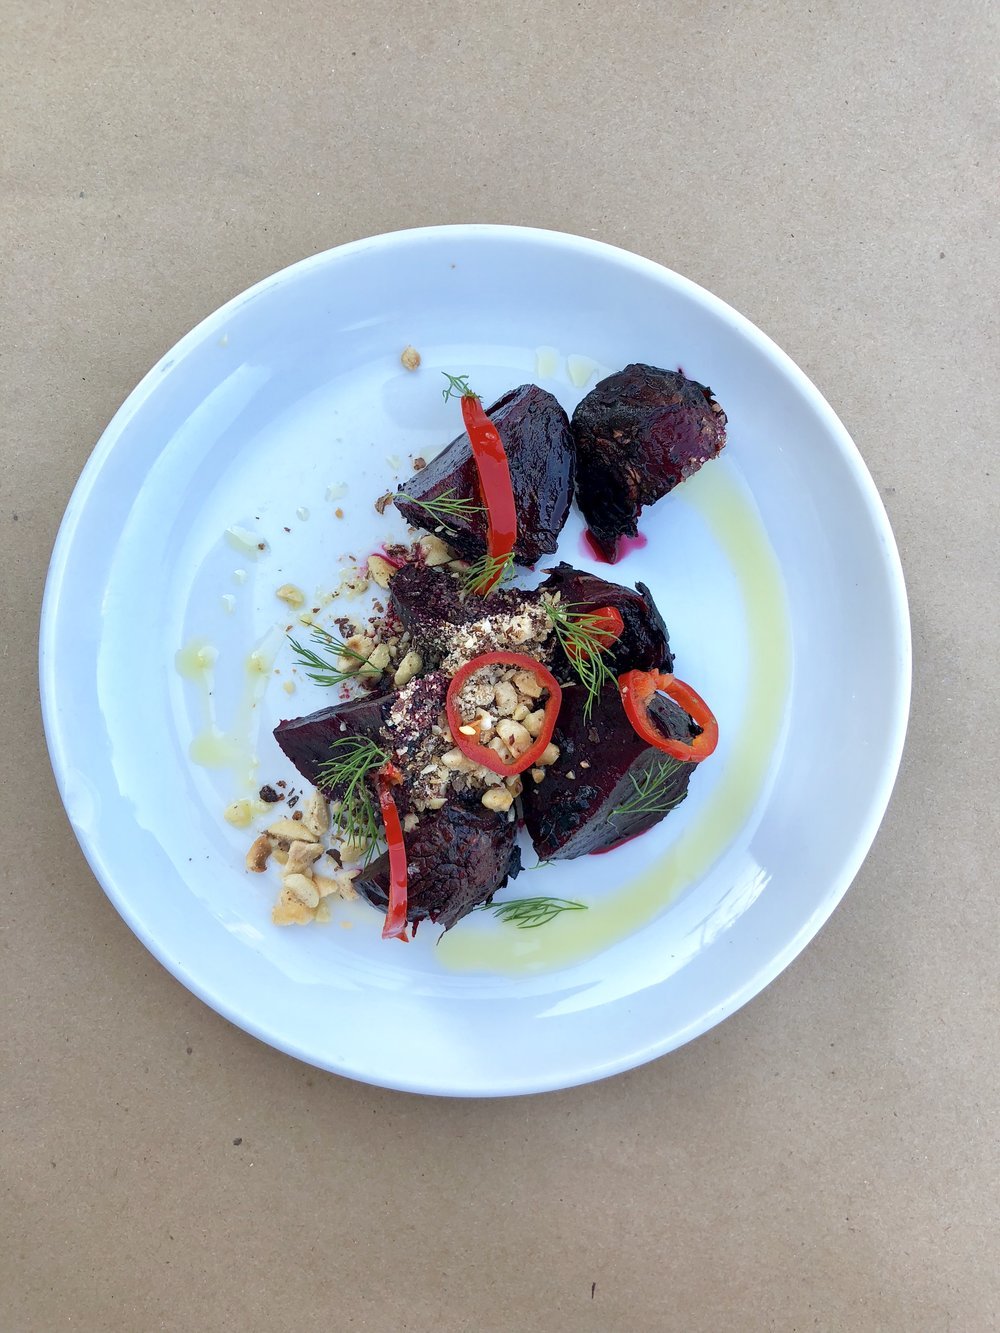 grilled beets + hazelnuts